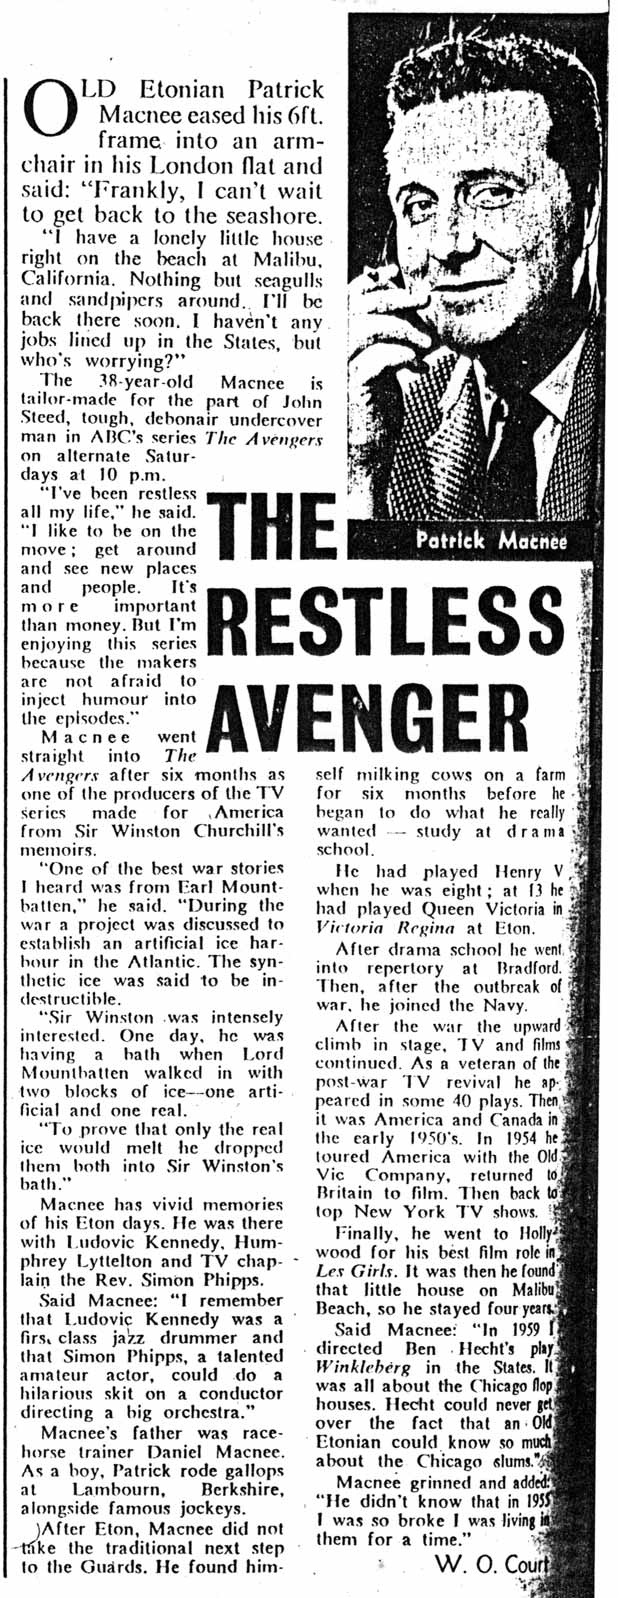 Patrick Macnee interview from TV Times 1961